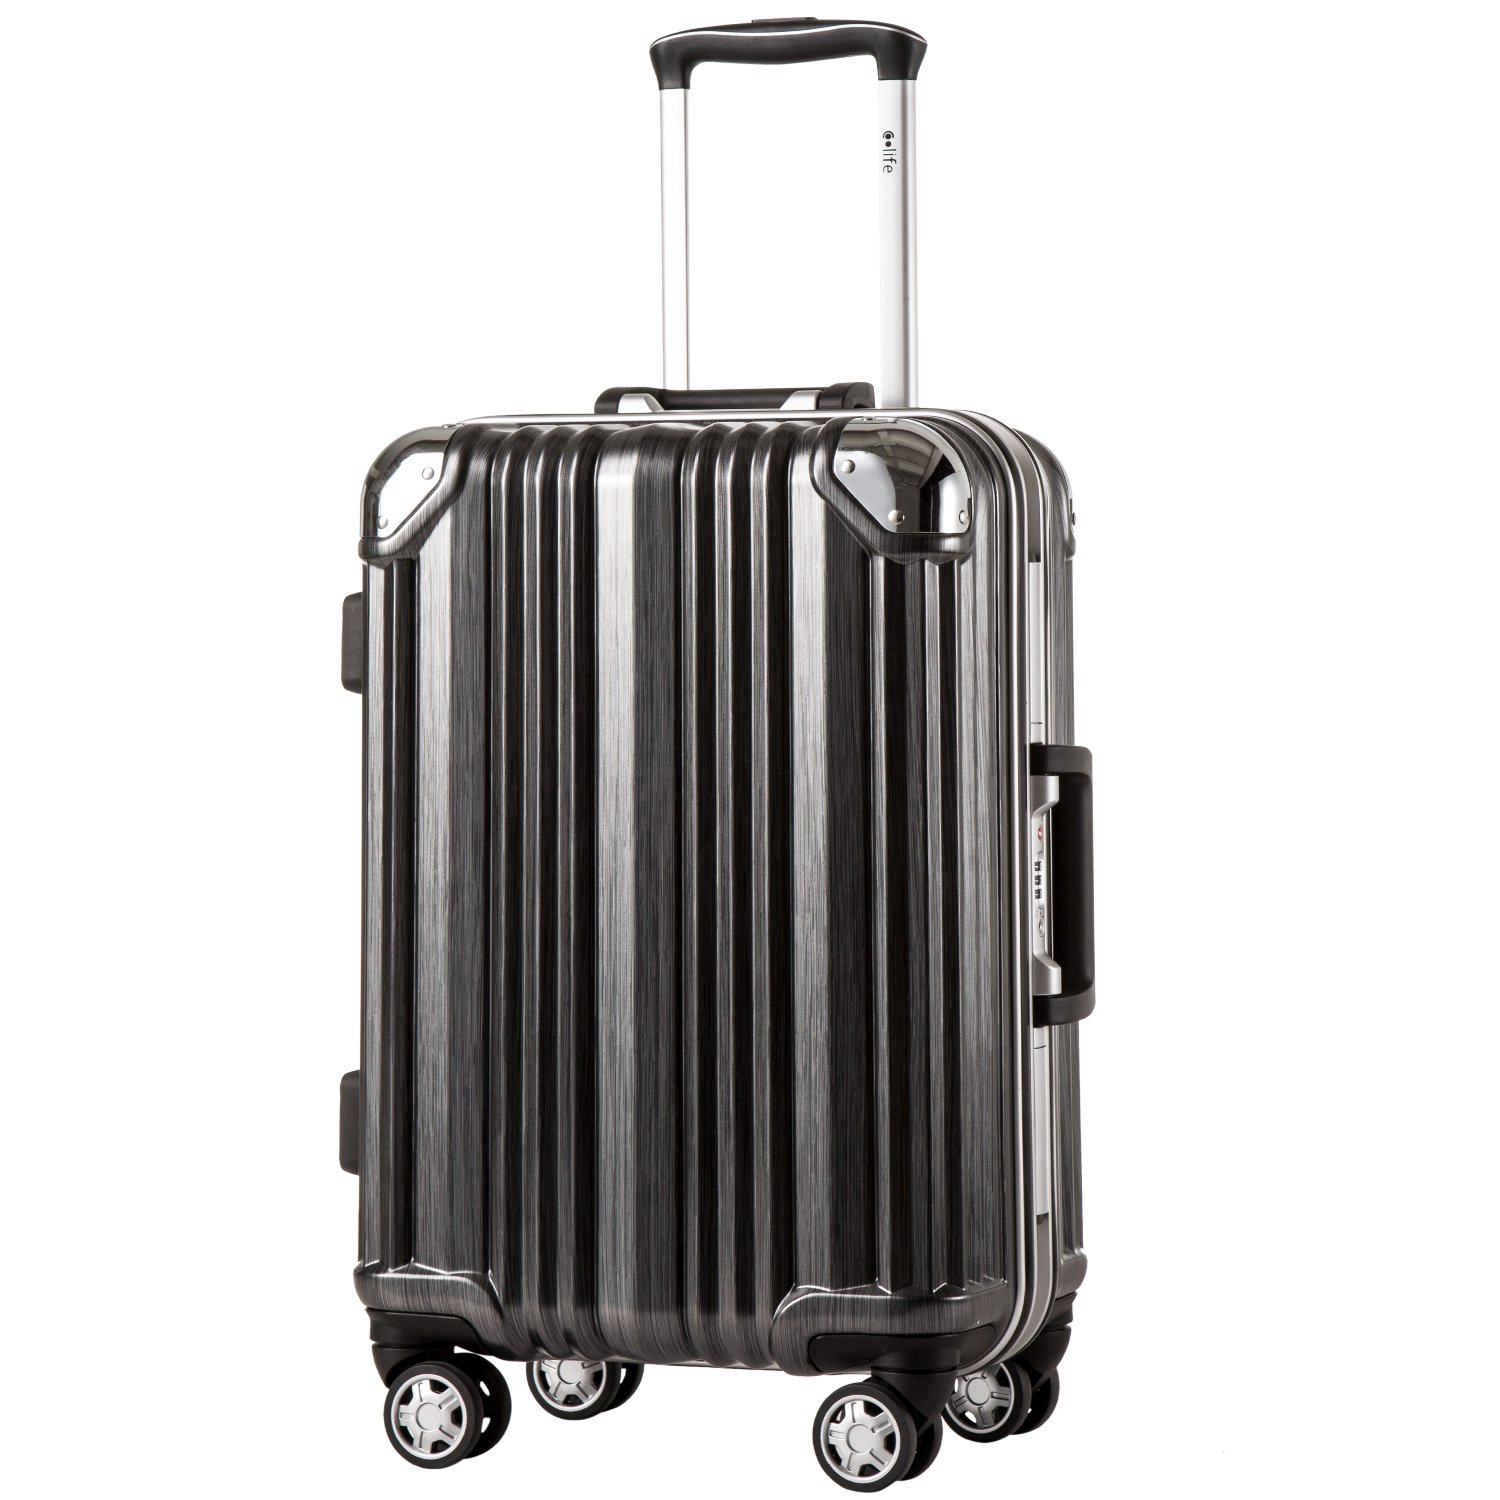 Coolife Luggage Aluminium Frame Suitcase 3 Piece Set with TSA Lock 100%PC (L(28in), Black)